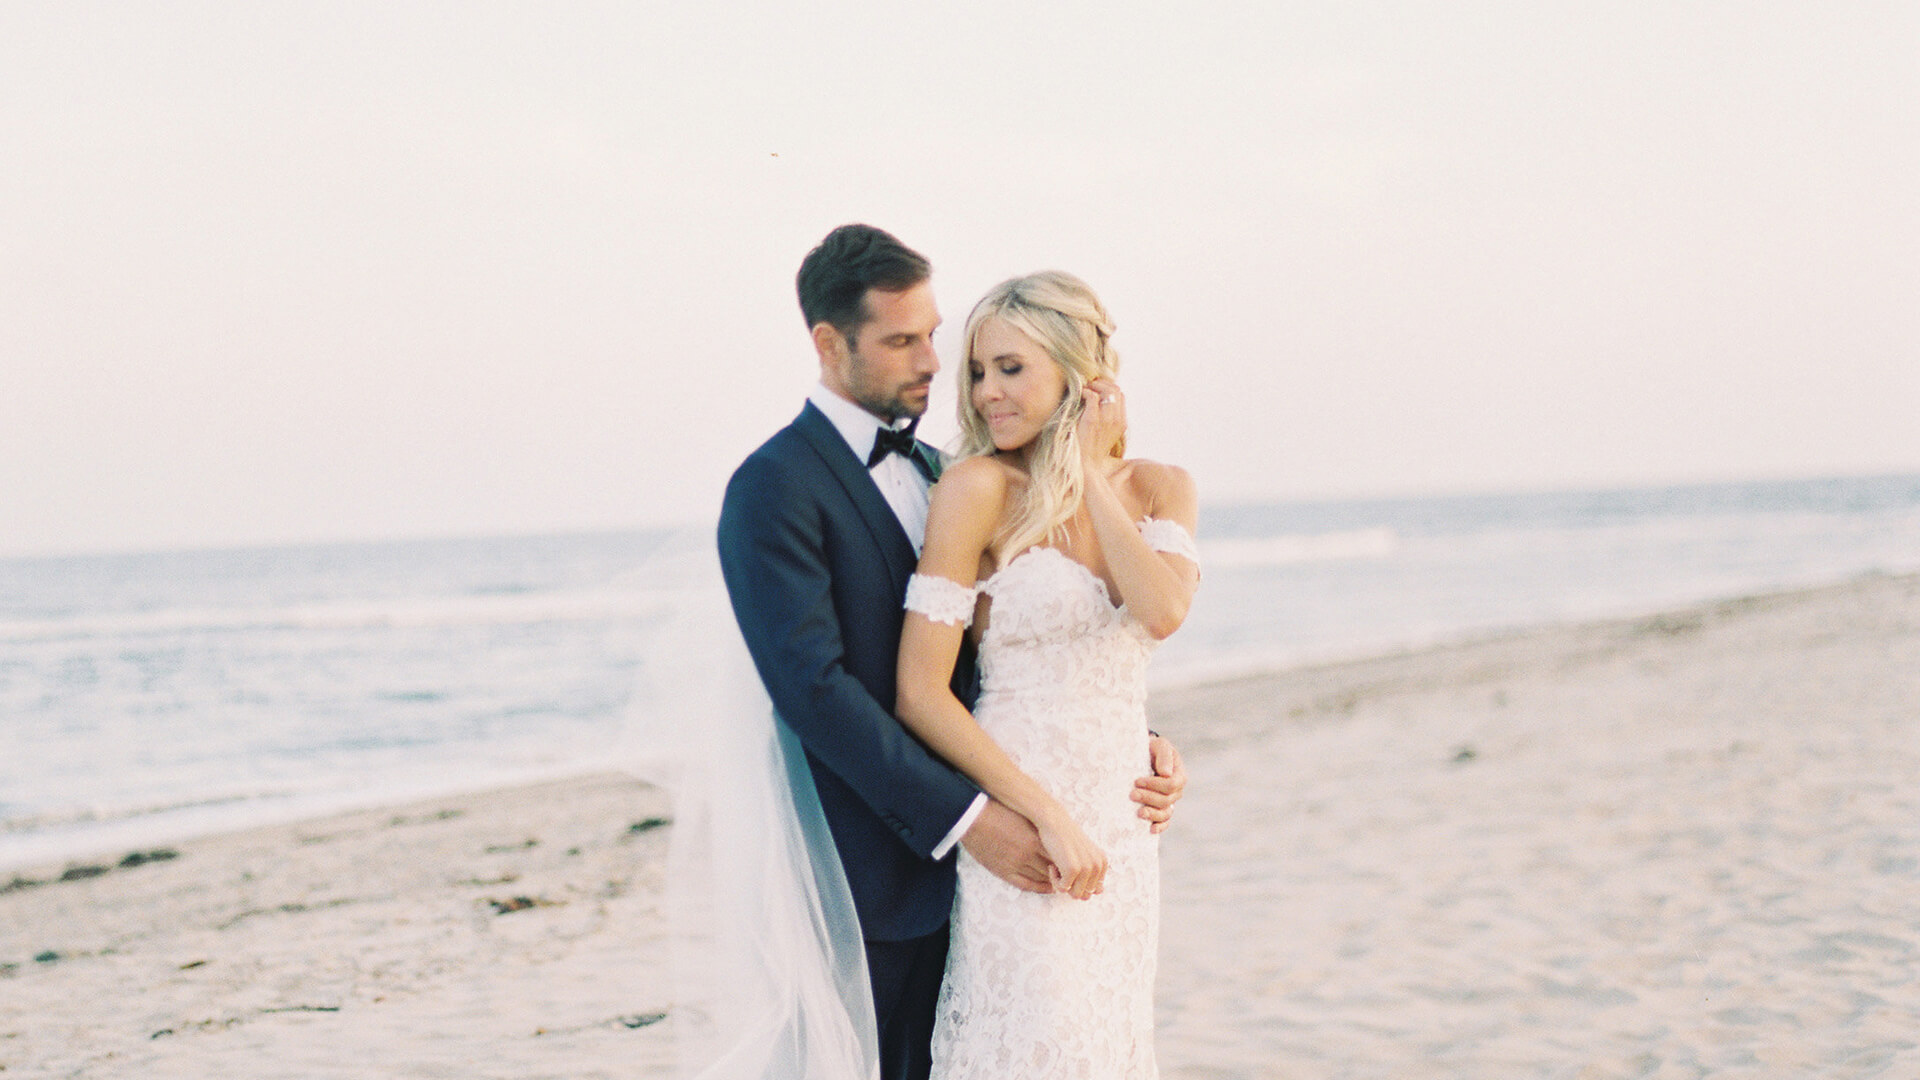 Zach + Tyler | Malibu, California | Adamson House